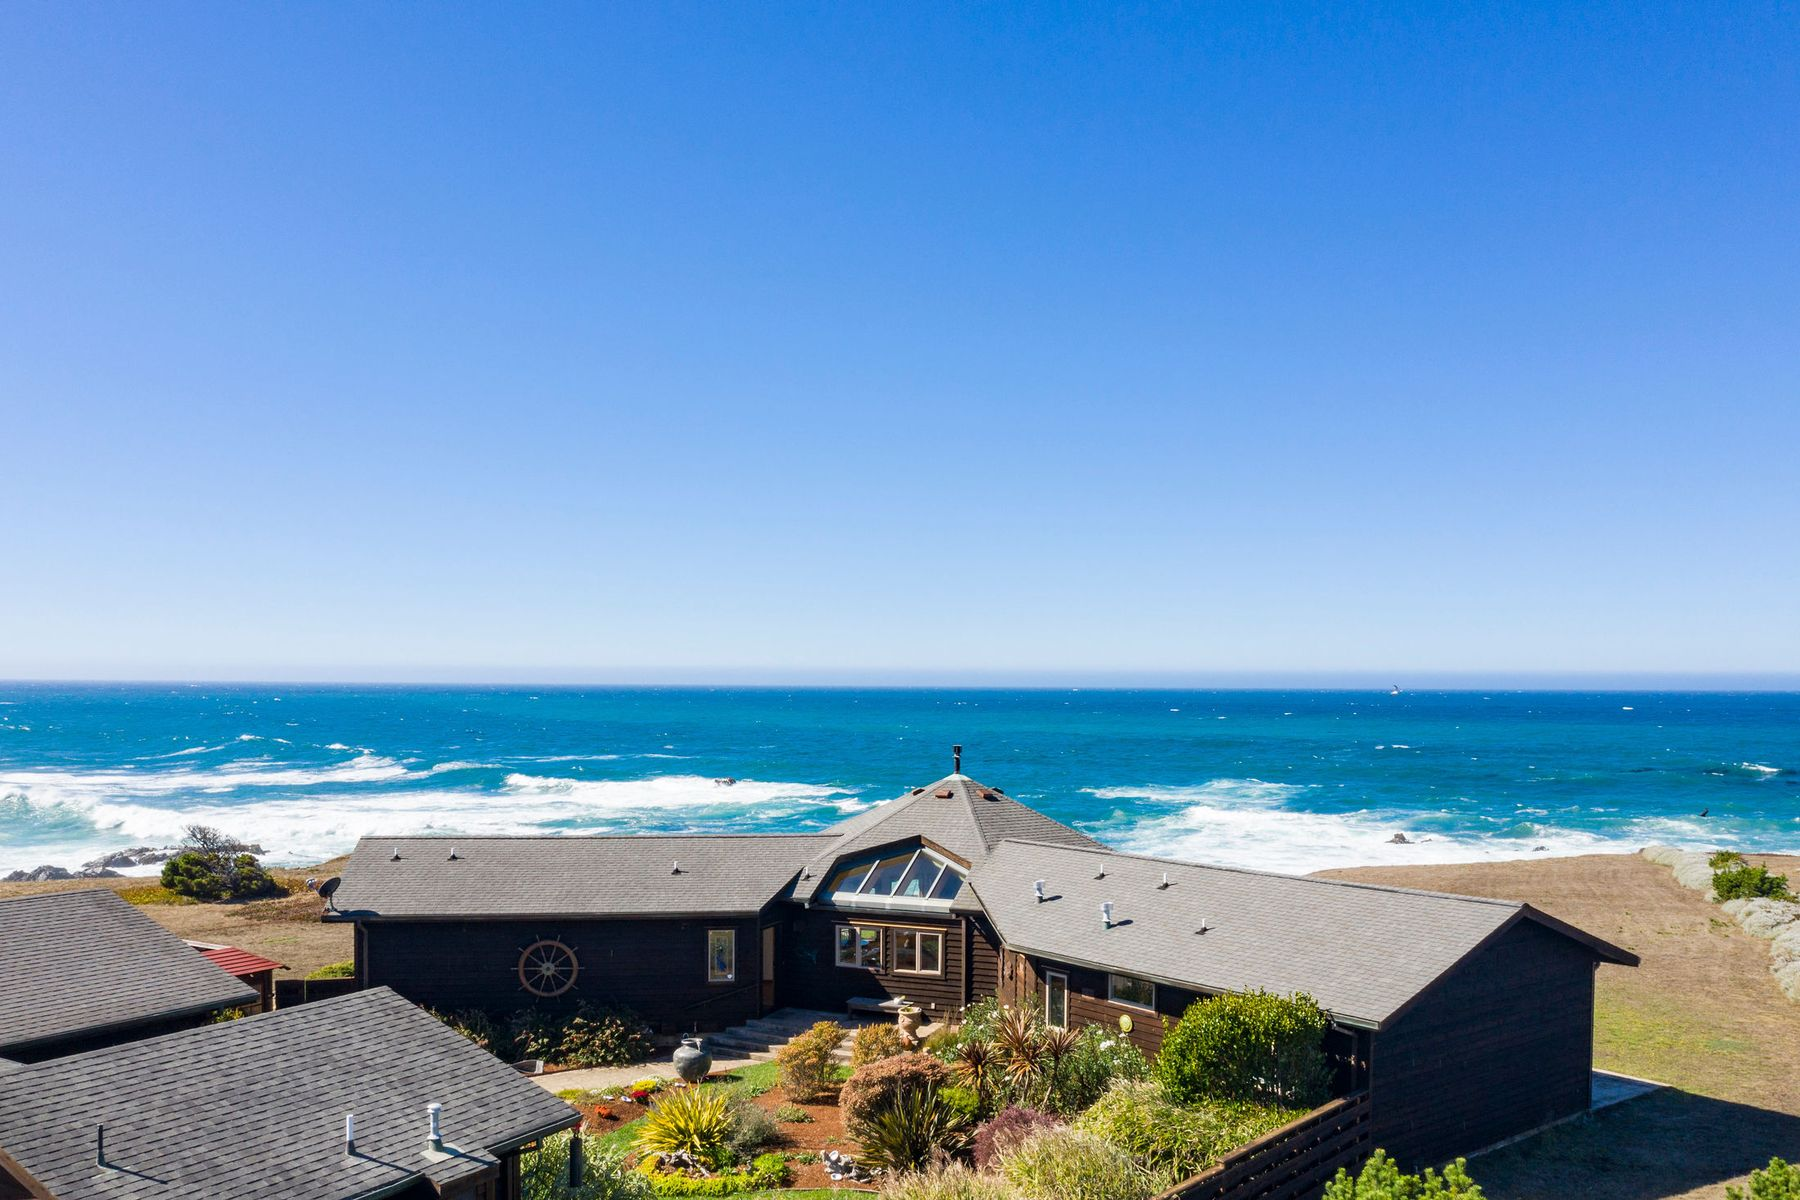 Single Family Homes for Sale at 34601 Pelican Way Fort Bragg, California 95437 United States